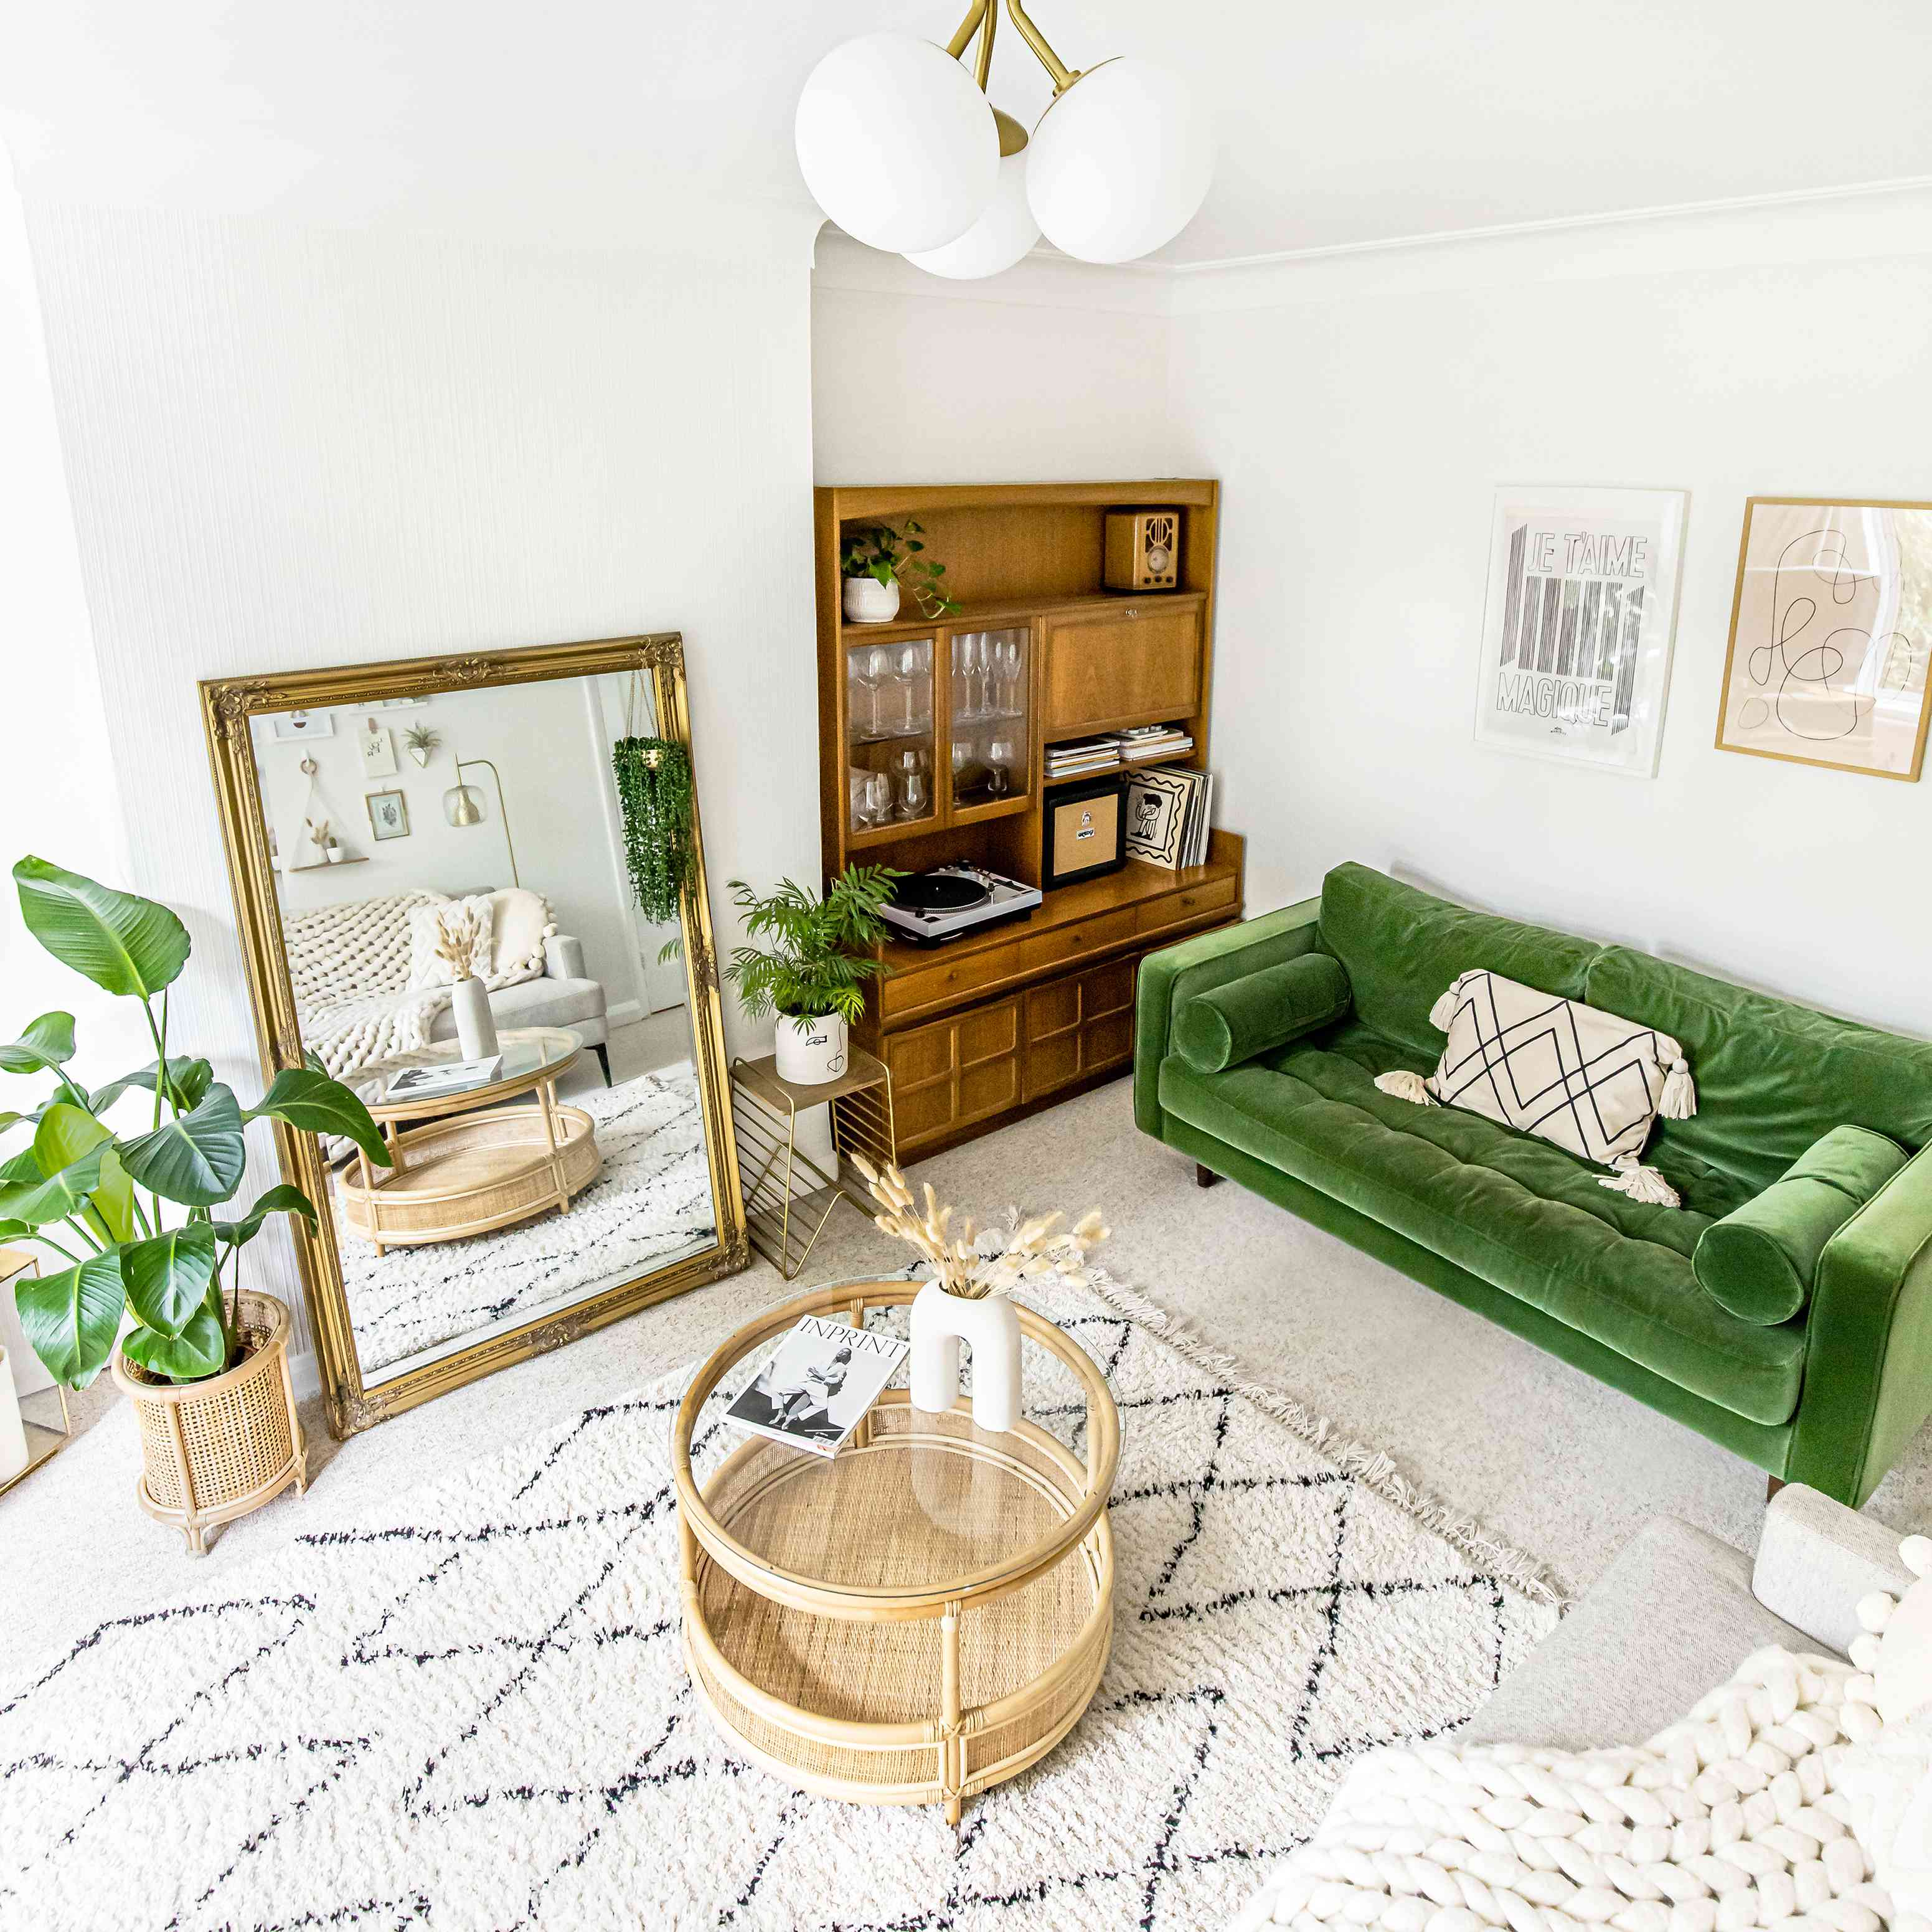 modern light fixture on ceiling of living room with green sofa